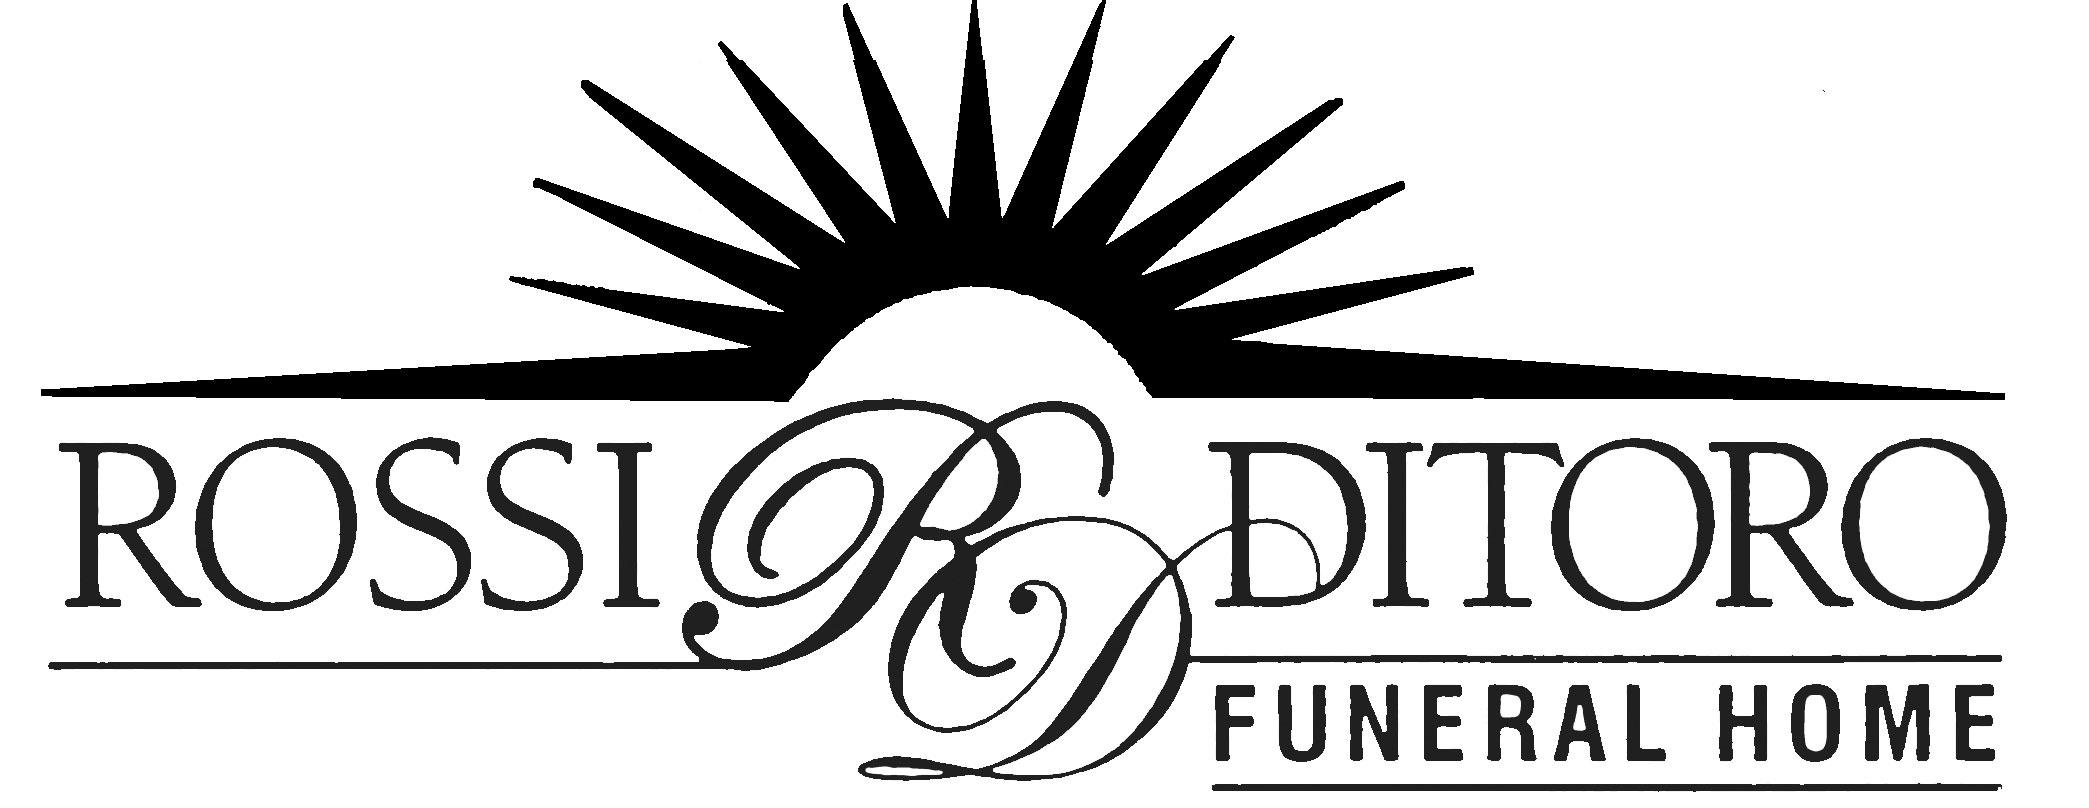 Rossi Ditoro Funeral Home Logo in black with a sunray emblem on top